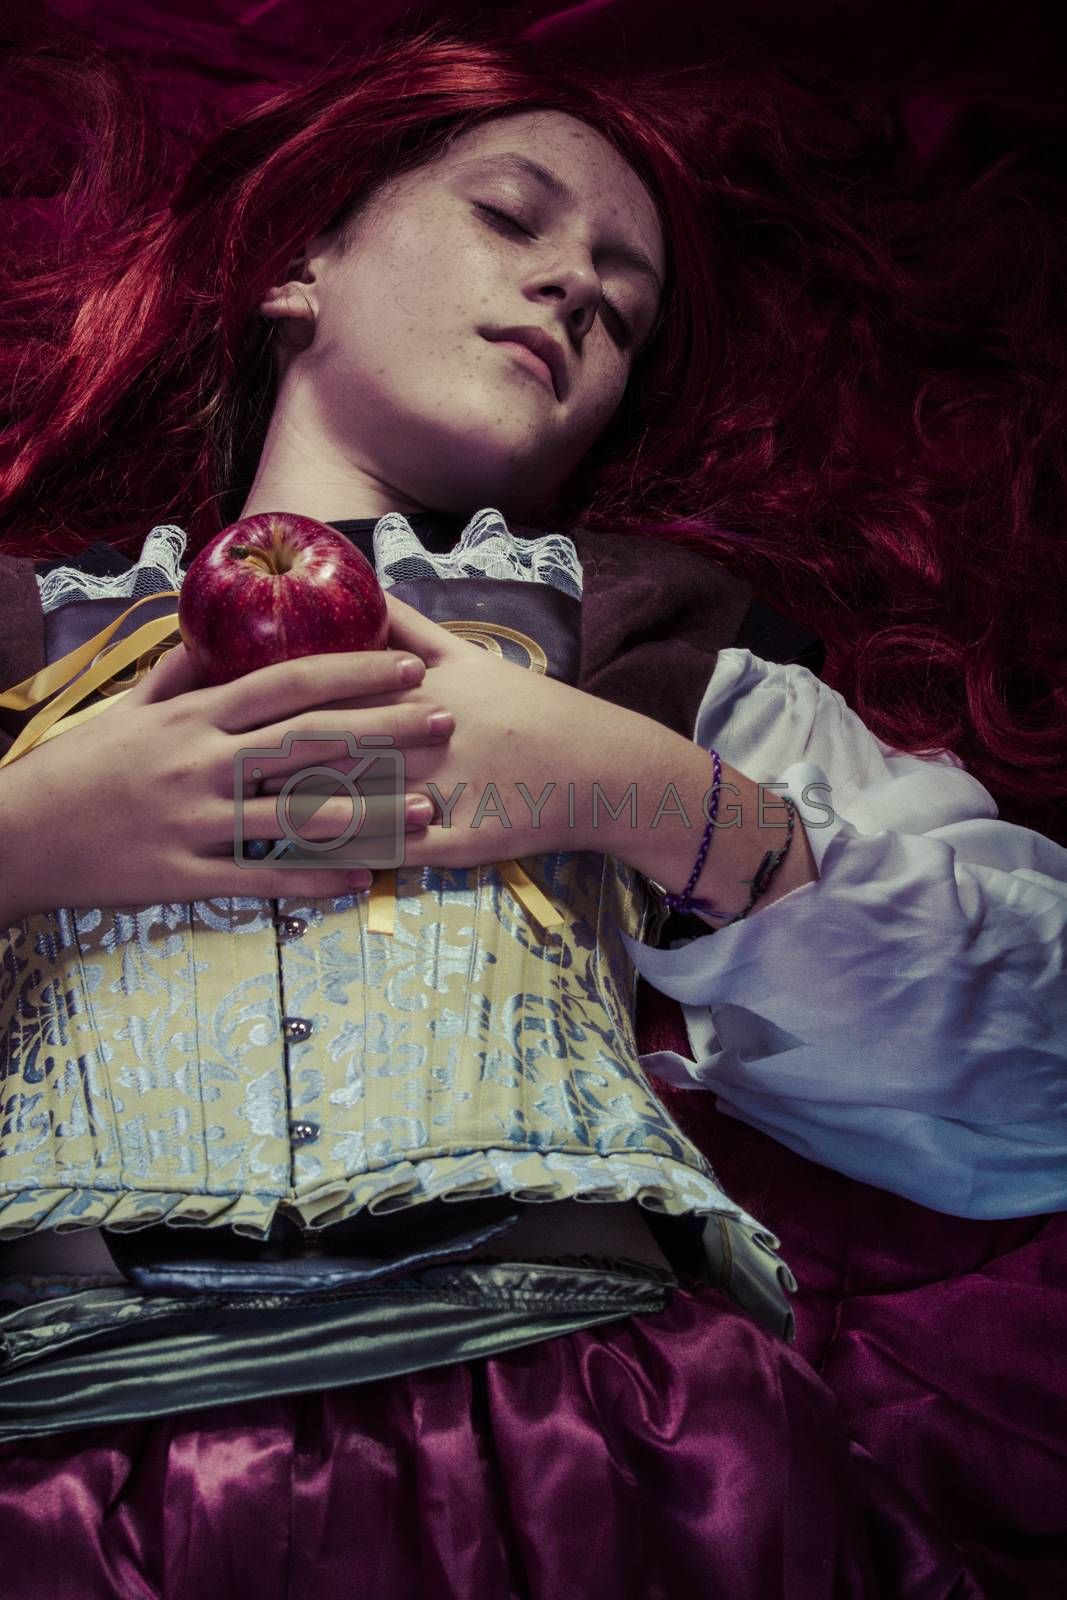 Fairytale, Teen with a red apple lying, tale scene by FernandoCortes